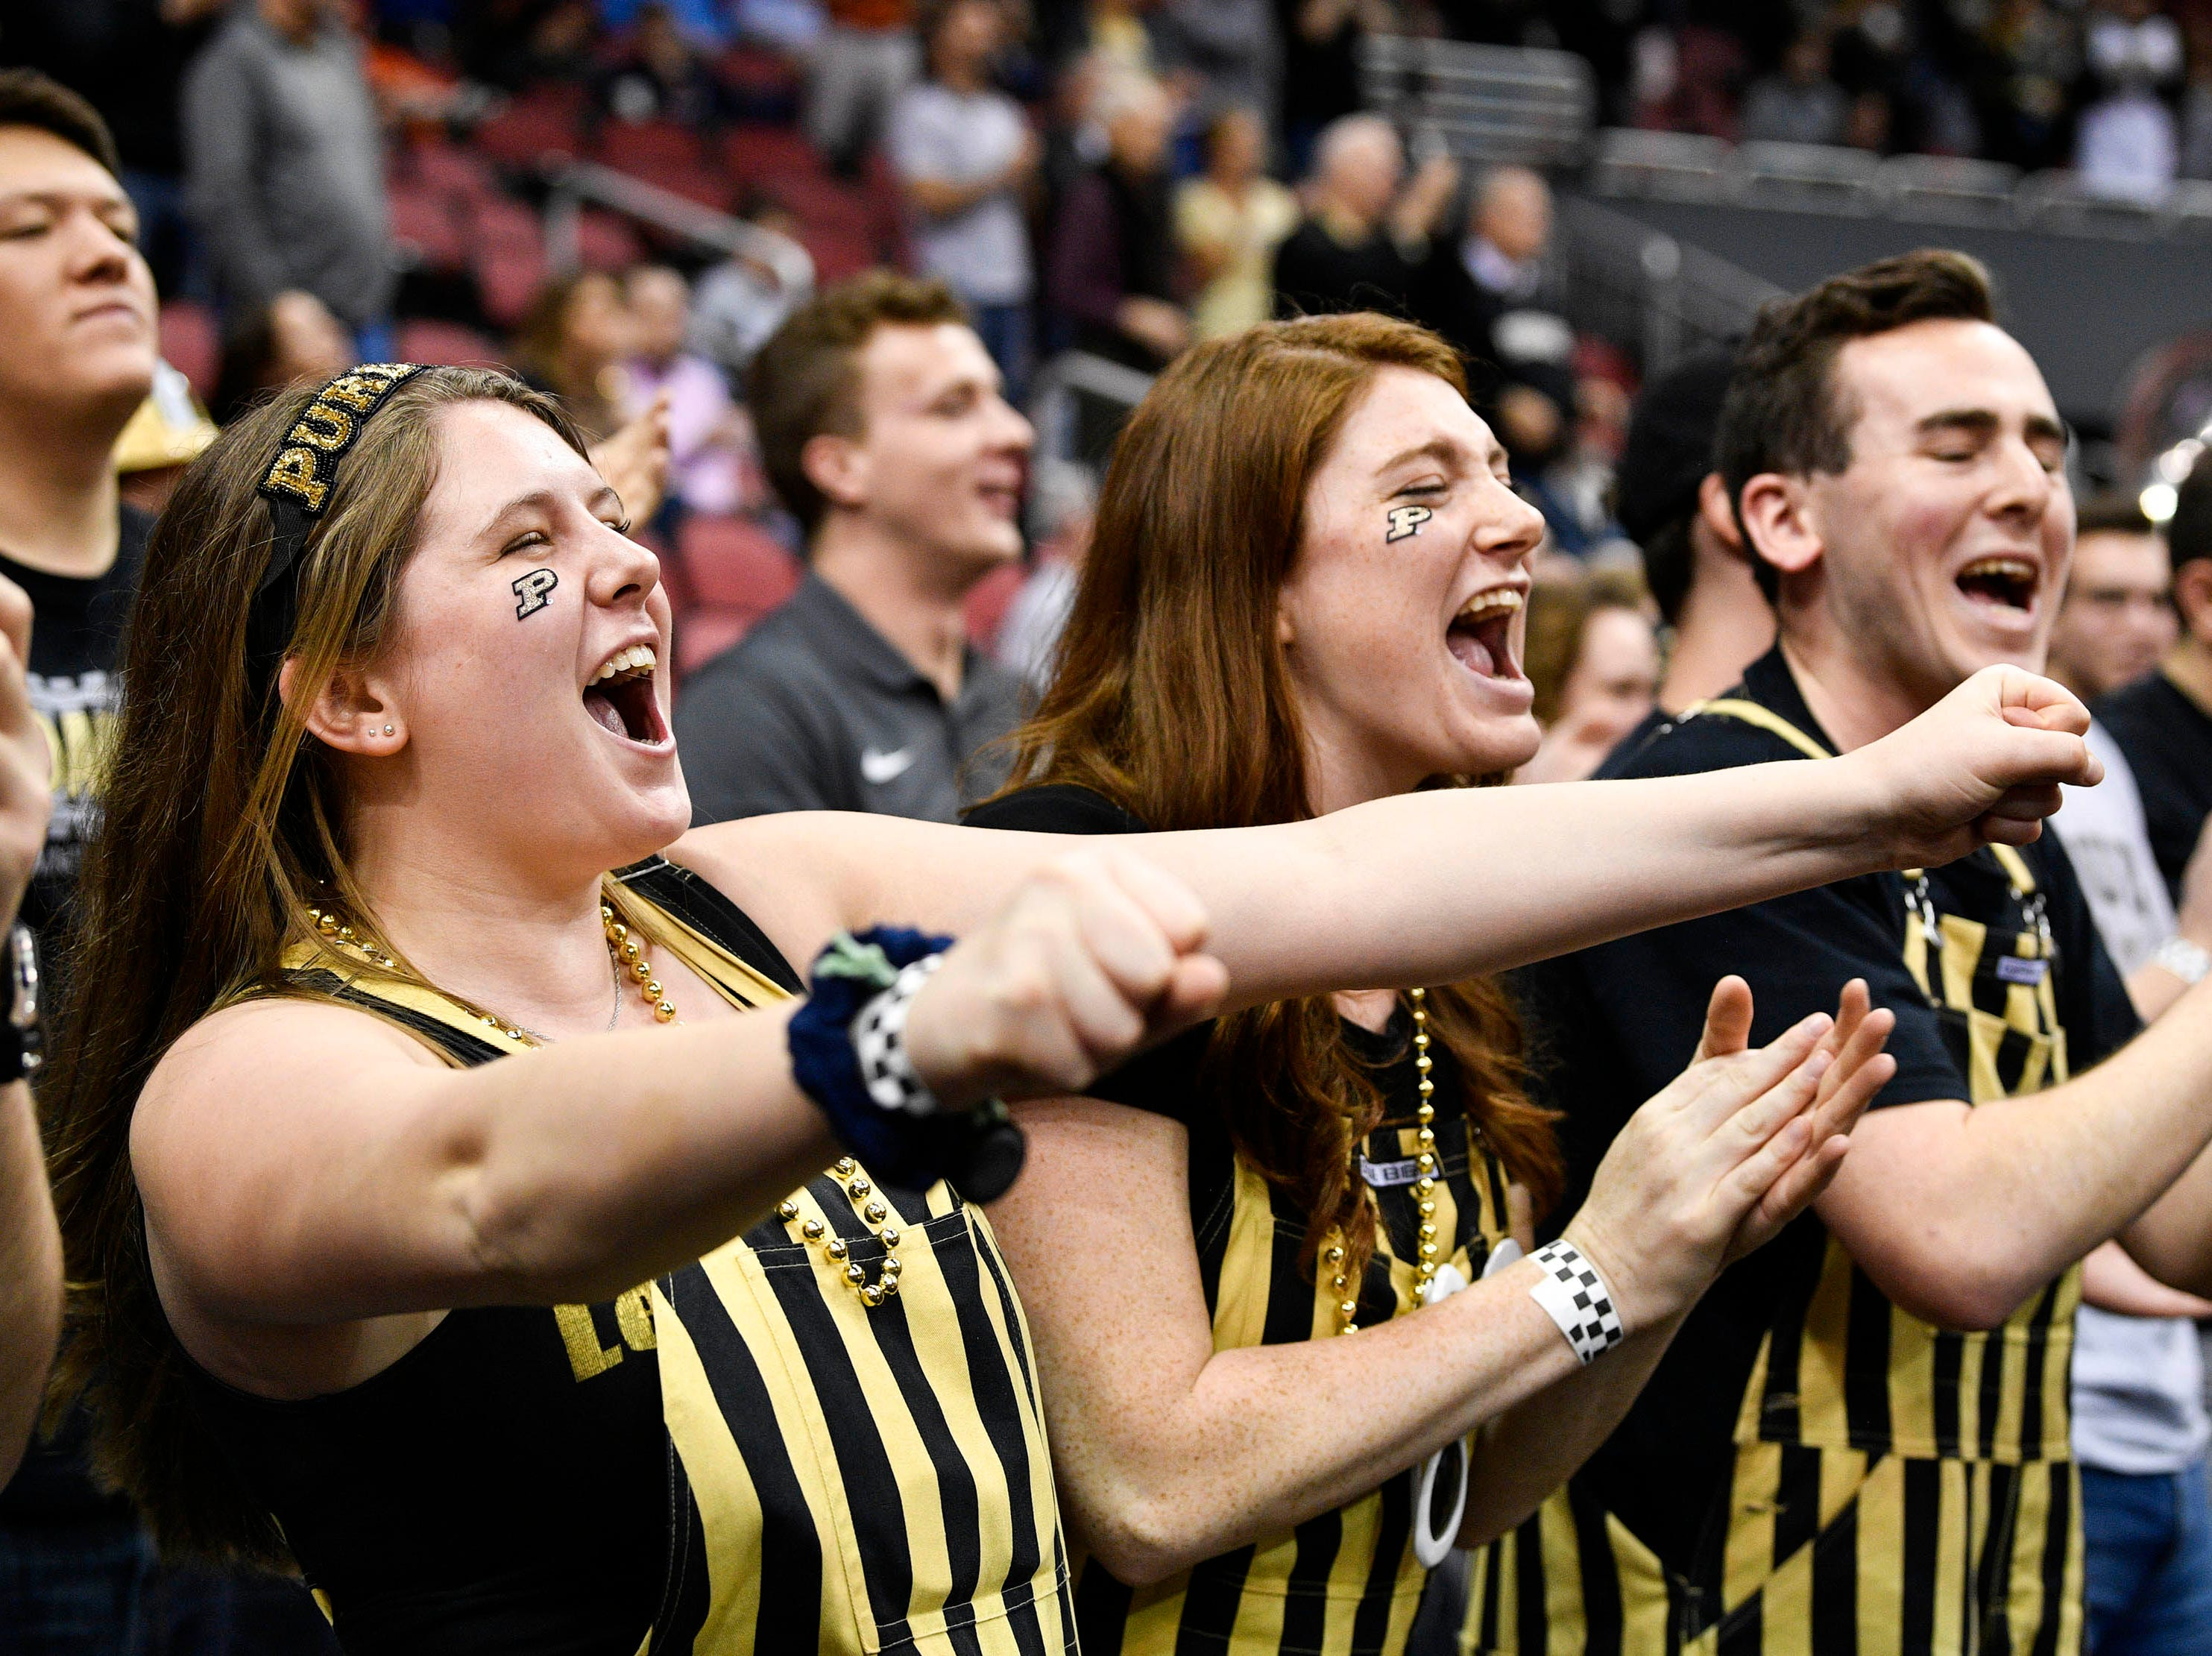 Mar 30, 2019; Louisville, KY, United States; Purdue Boilermakers fans cheer before the championship game against the Virginia Cavaliers of the south regional of the 2019 NCAA Tournament at KFC Yum Center. Mandatory Credit: Jamie Rhodes-USA TODAY Sports